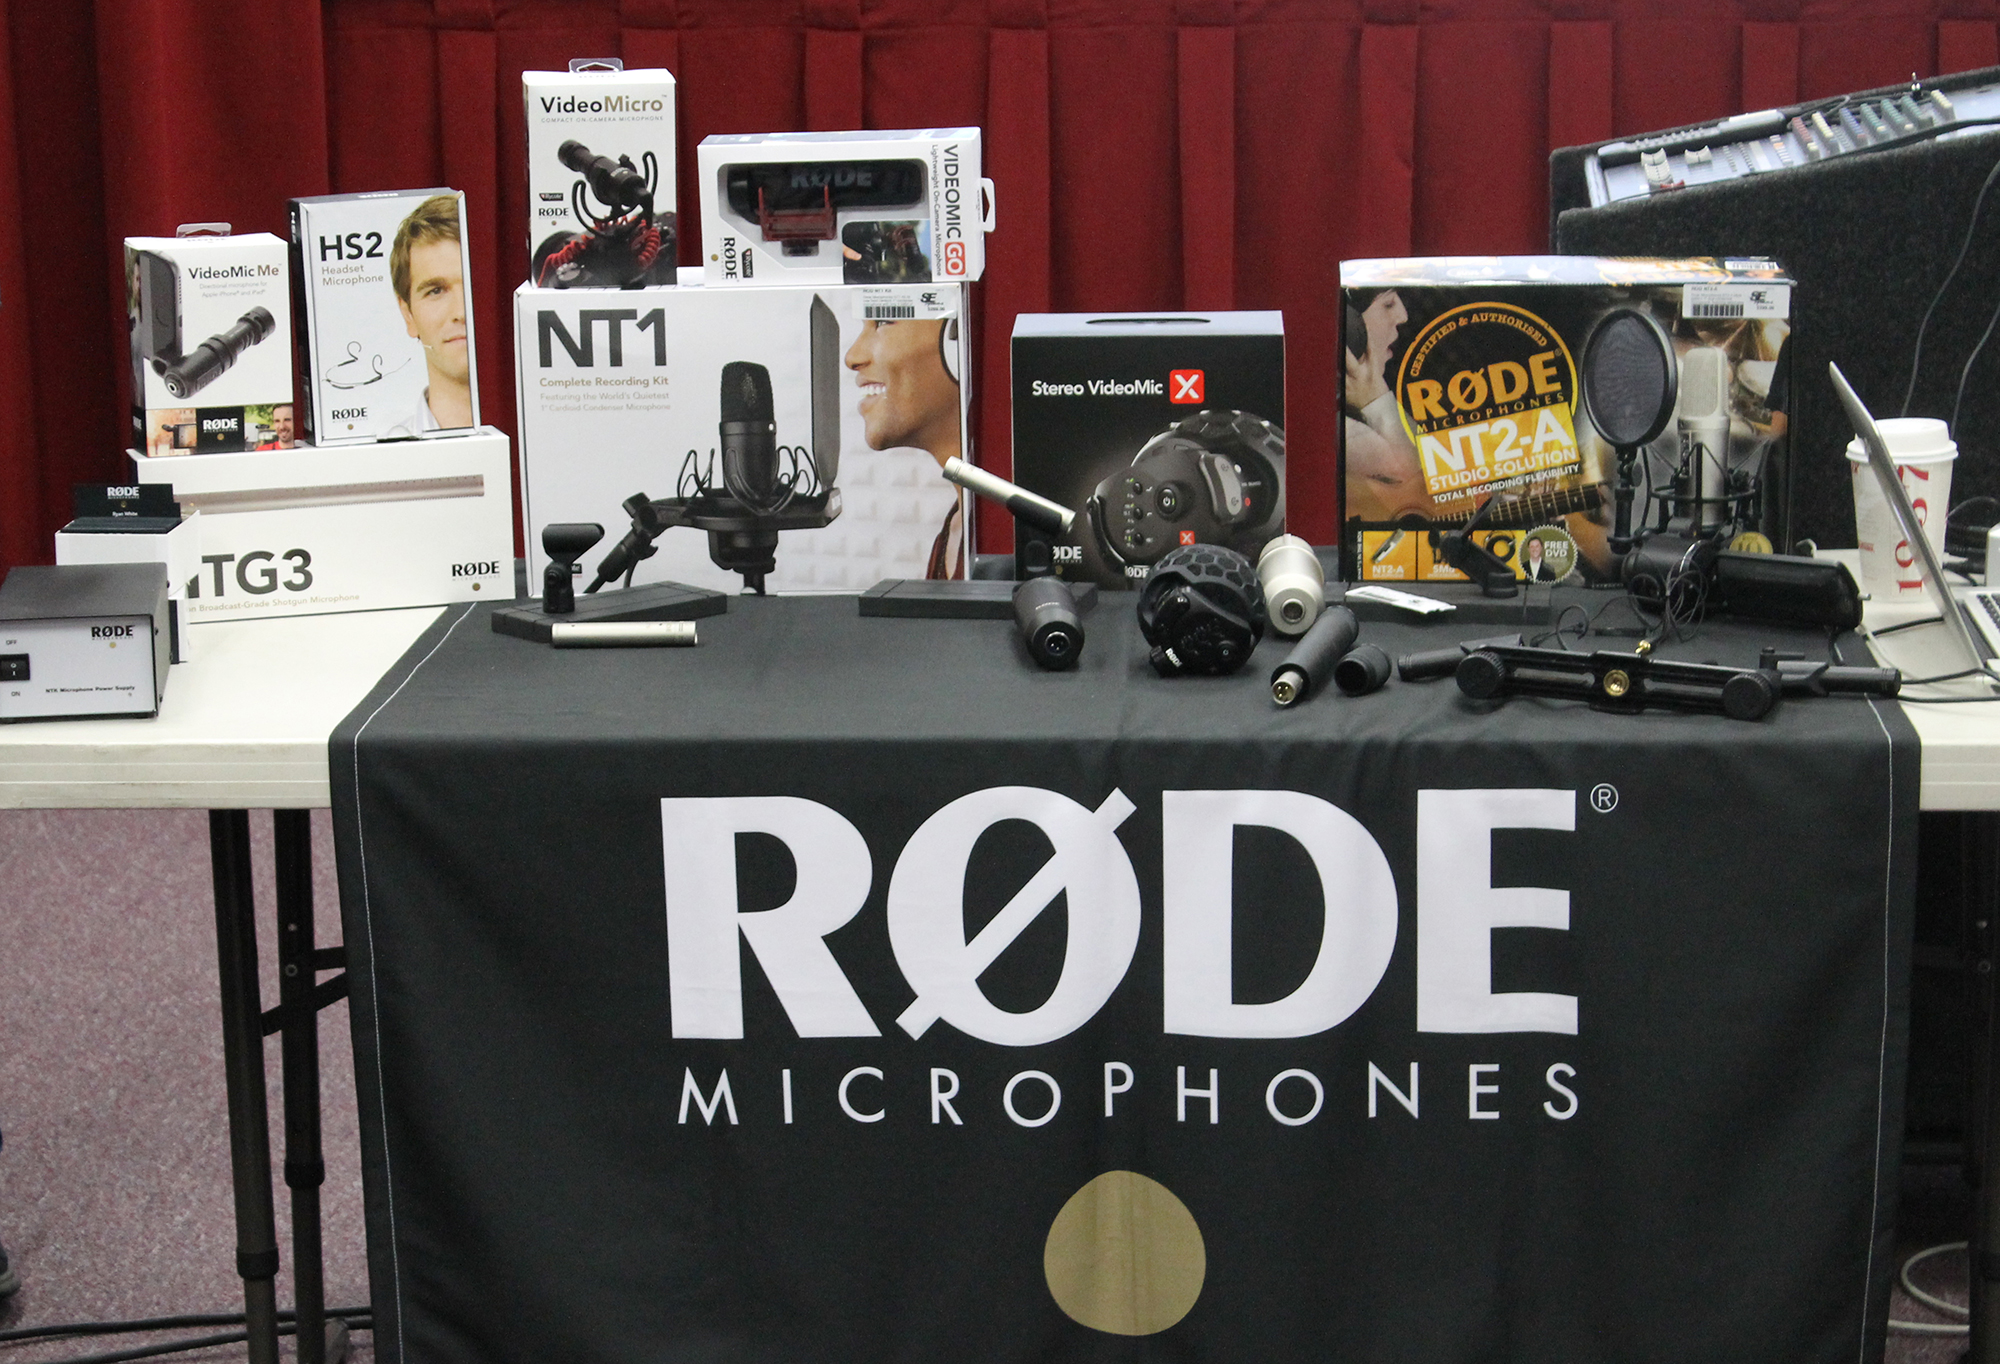 Rode Microphones Display